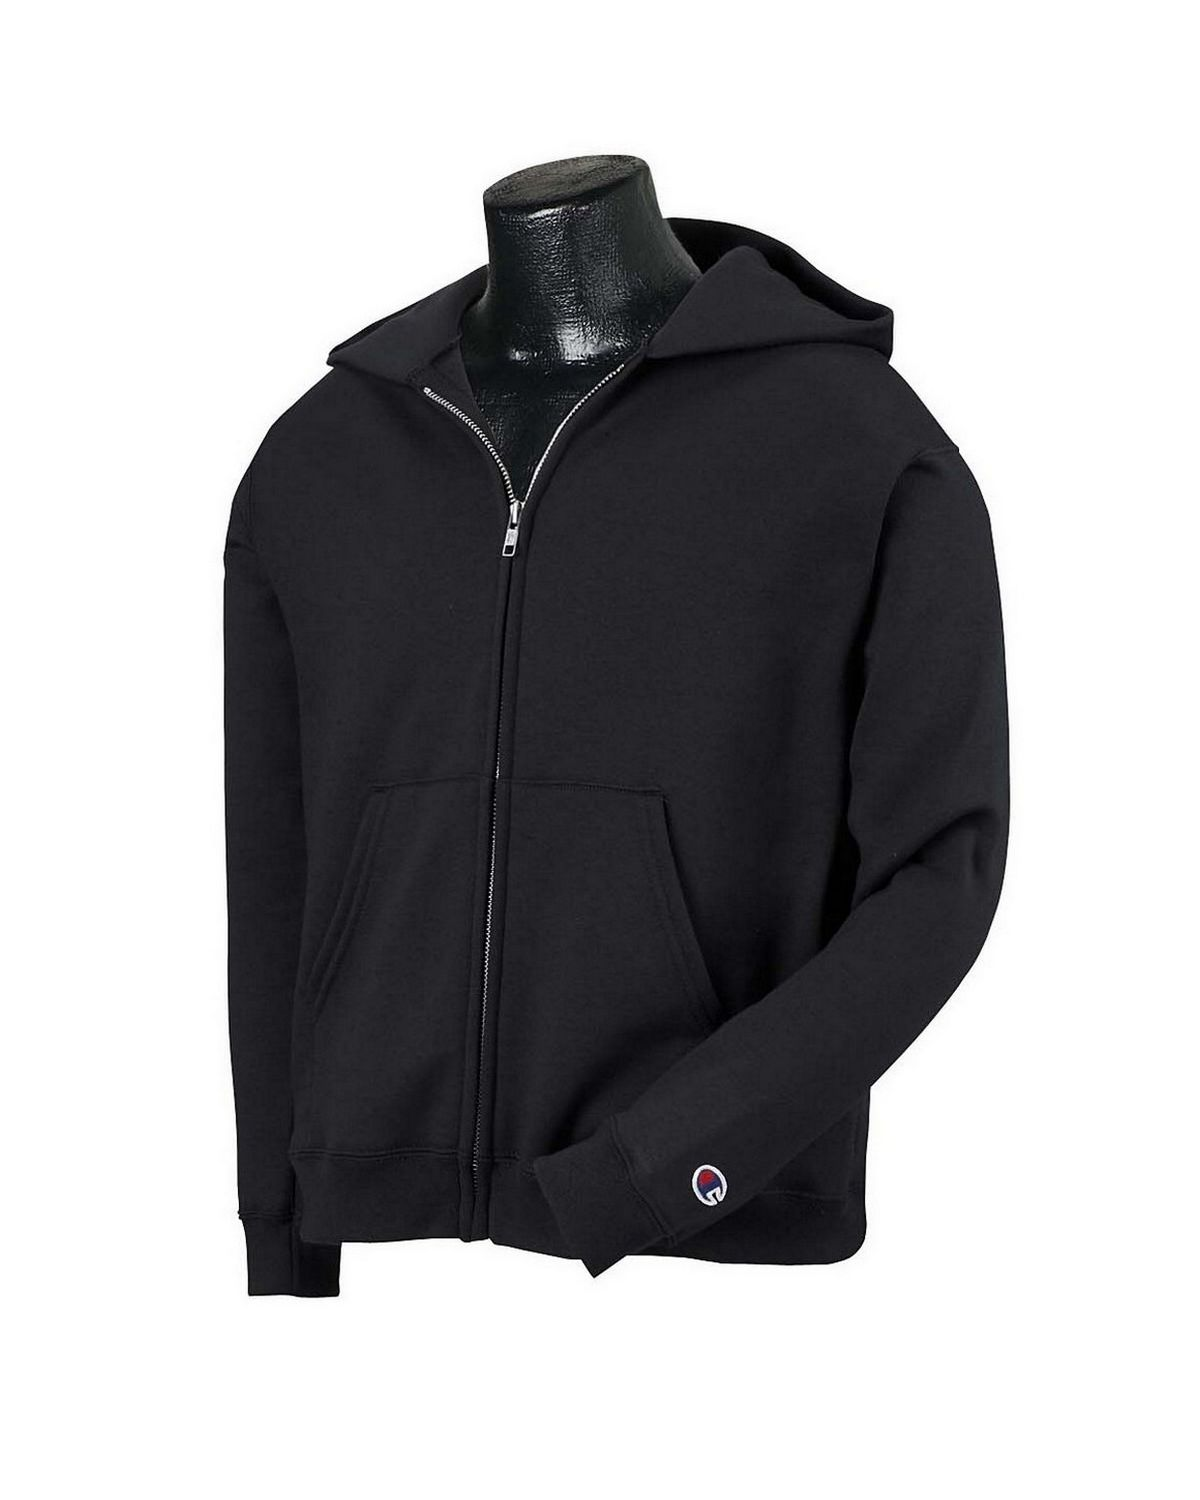 Champion S890 Youth EcoSmart Full Zip Hood - Black - M S890